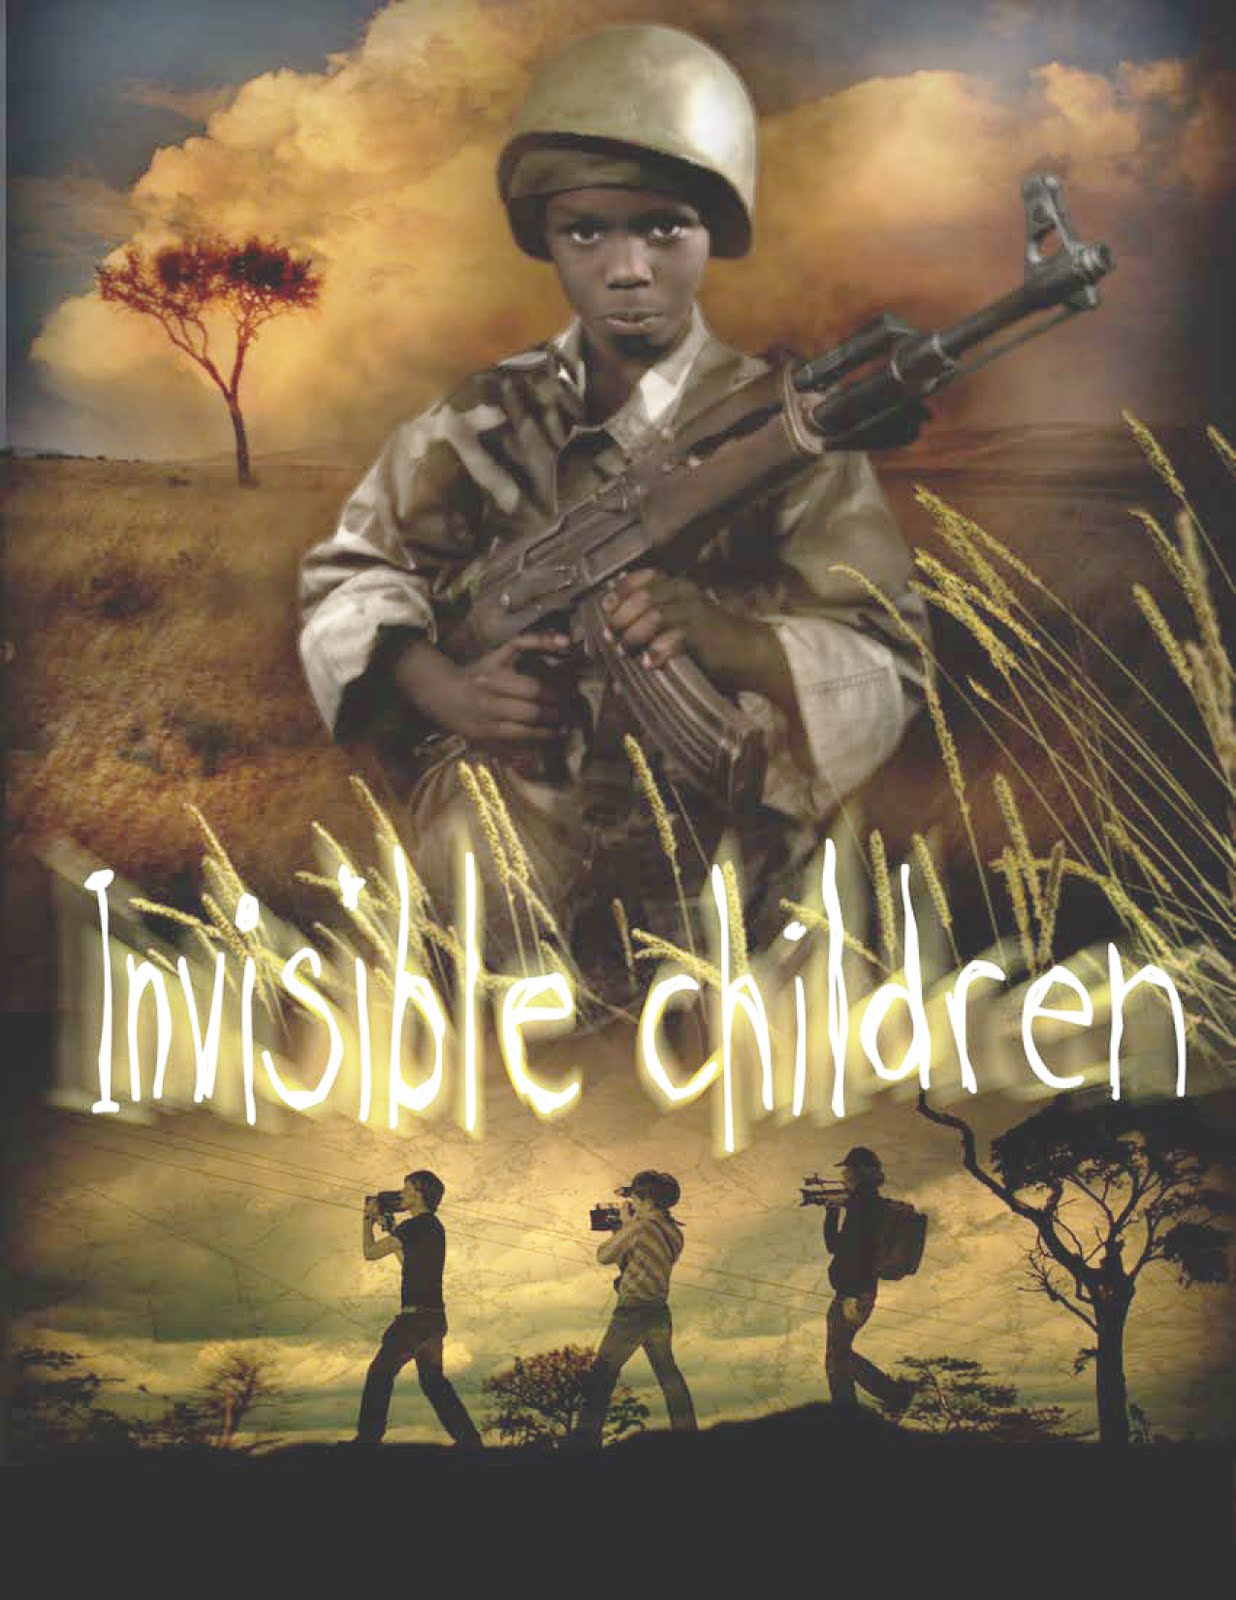 the film kony 2012 and invisible children Find industry contacts & talent representation access in-development titles not available on imdb get the latest news from leading industry trades.